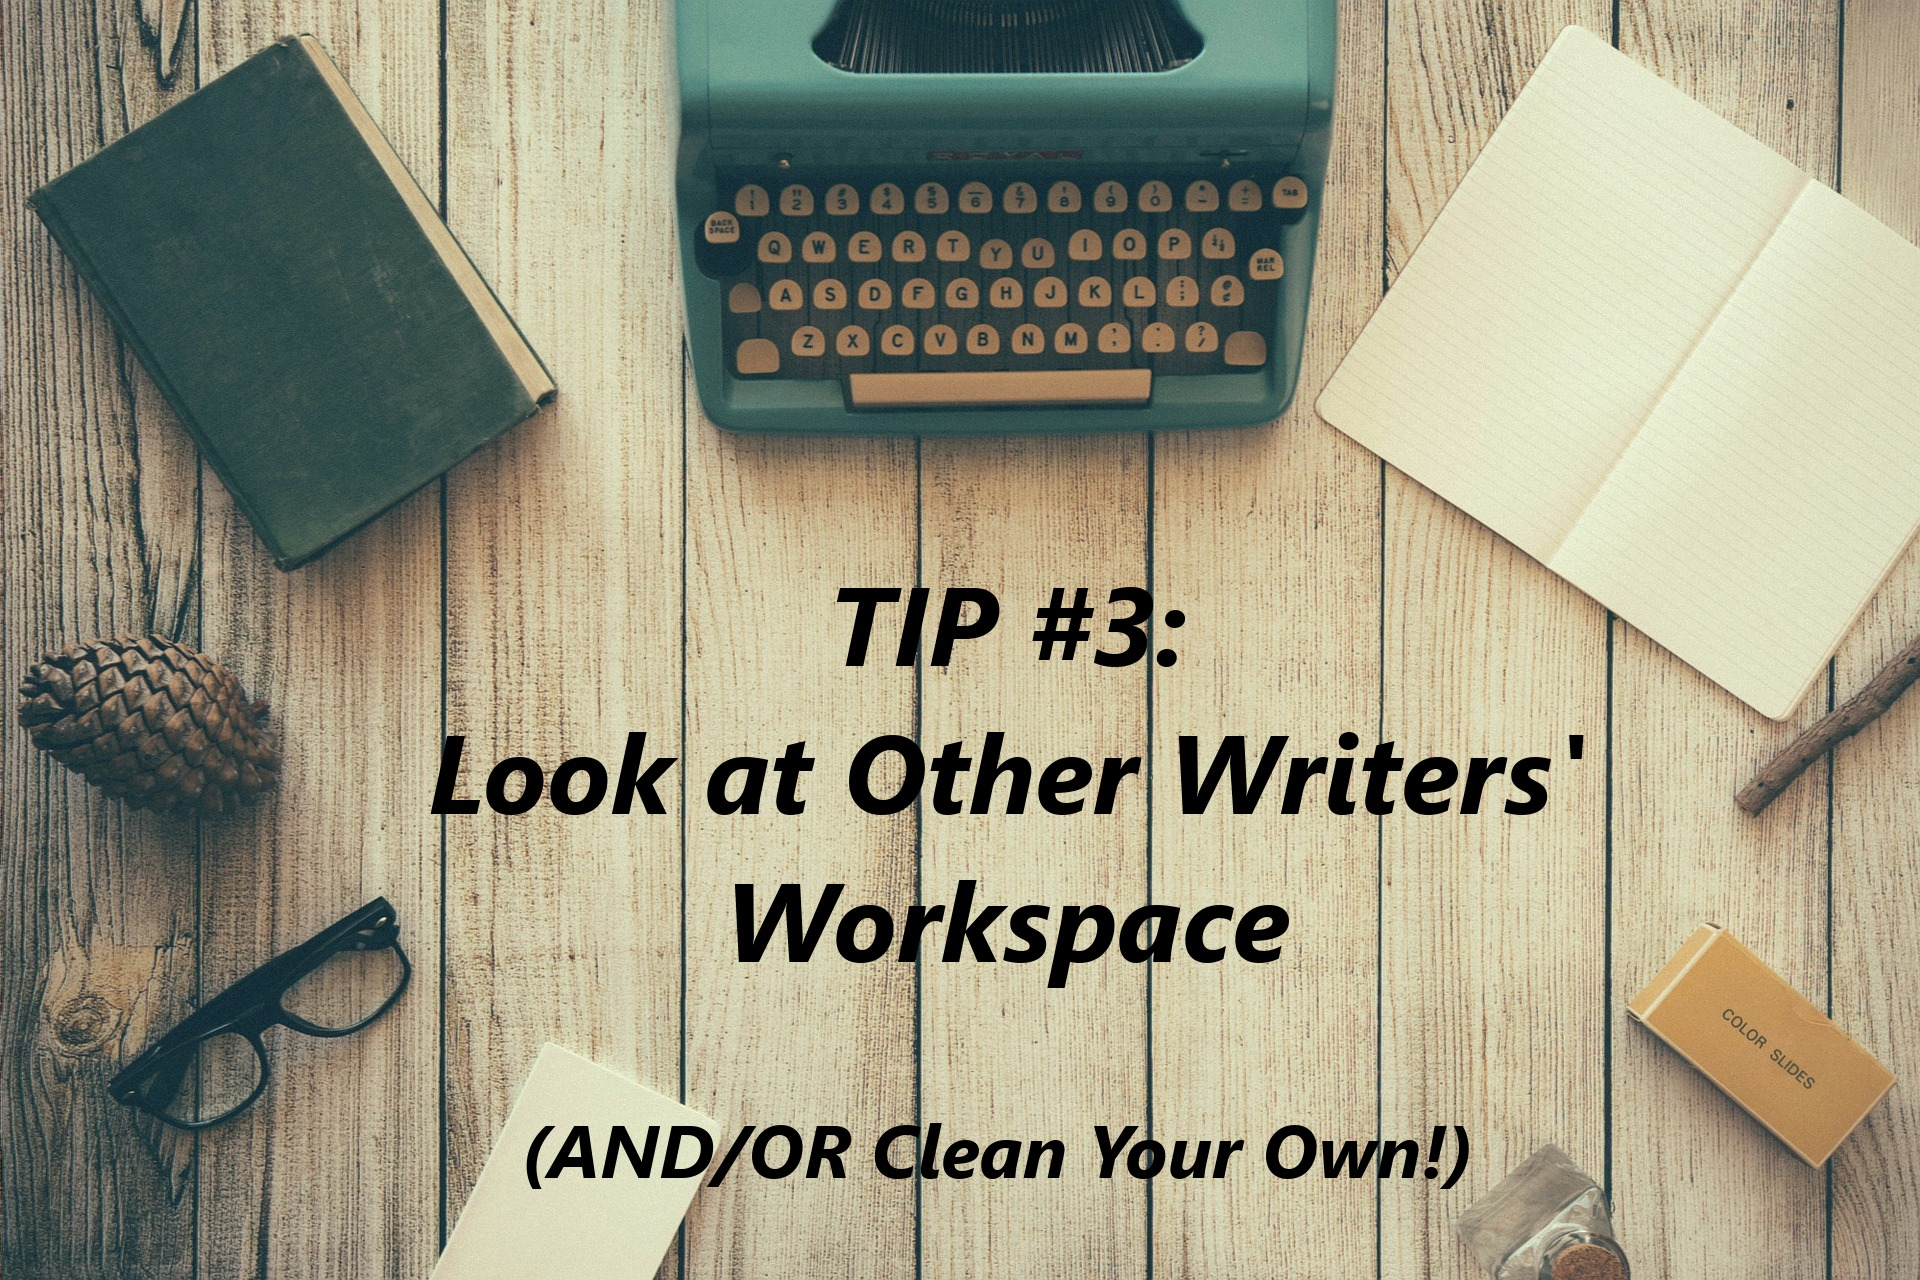 for workplace inspiraction check out other authors' workspaces and clean your own